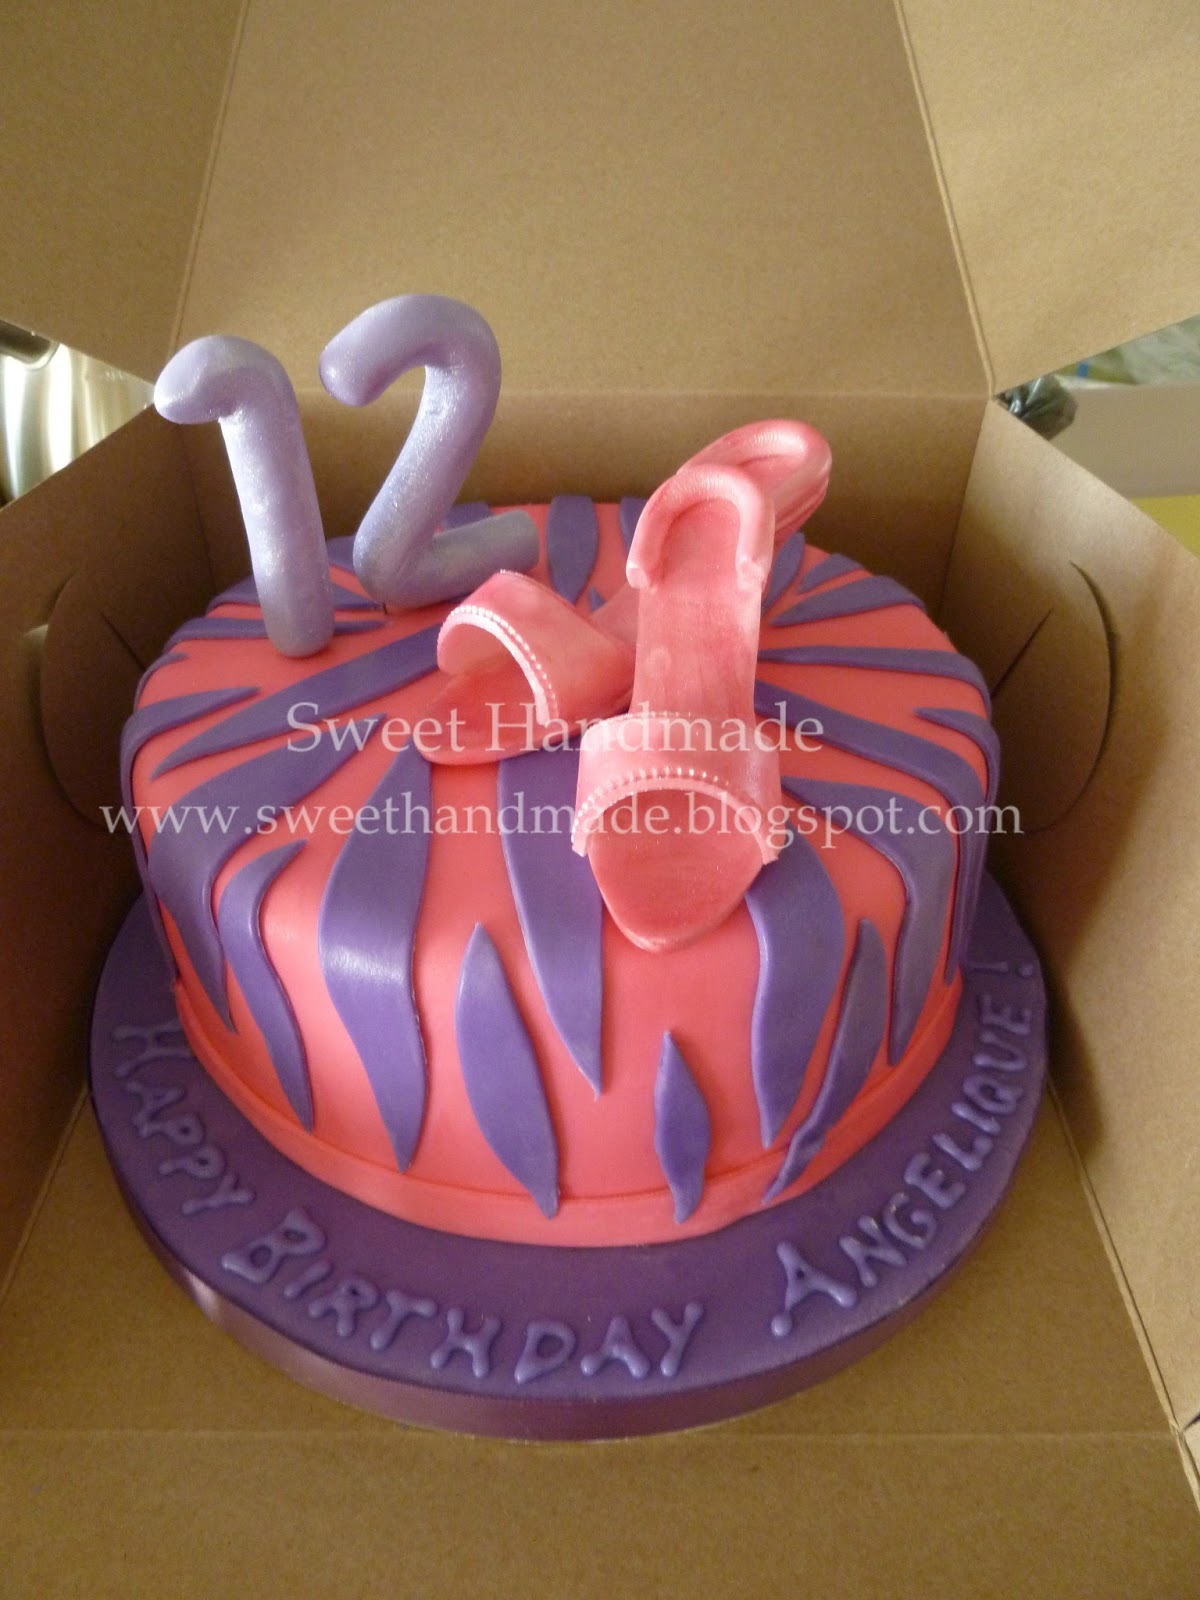 Sweet Handmade Cookies 12th Birthday Cake With High Heals And